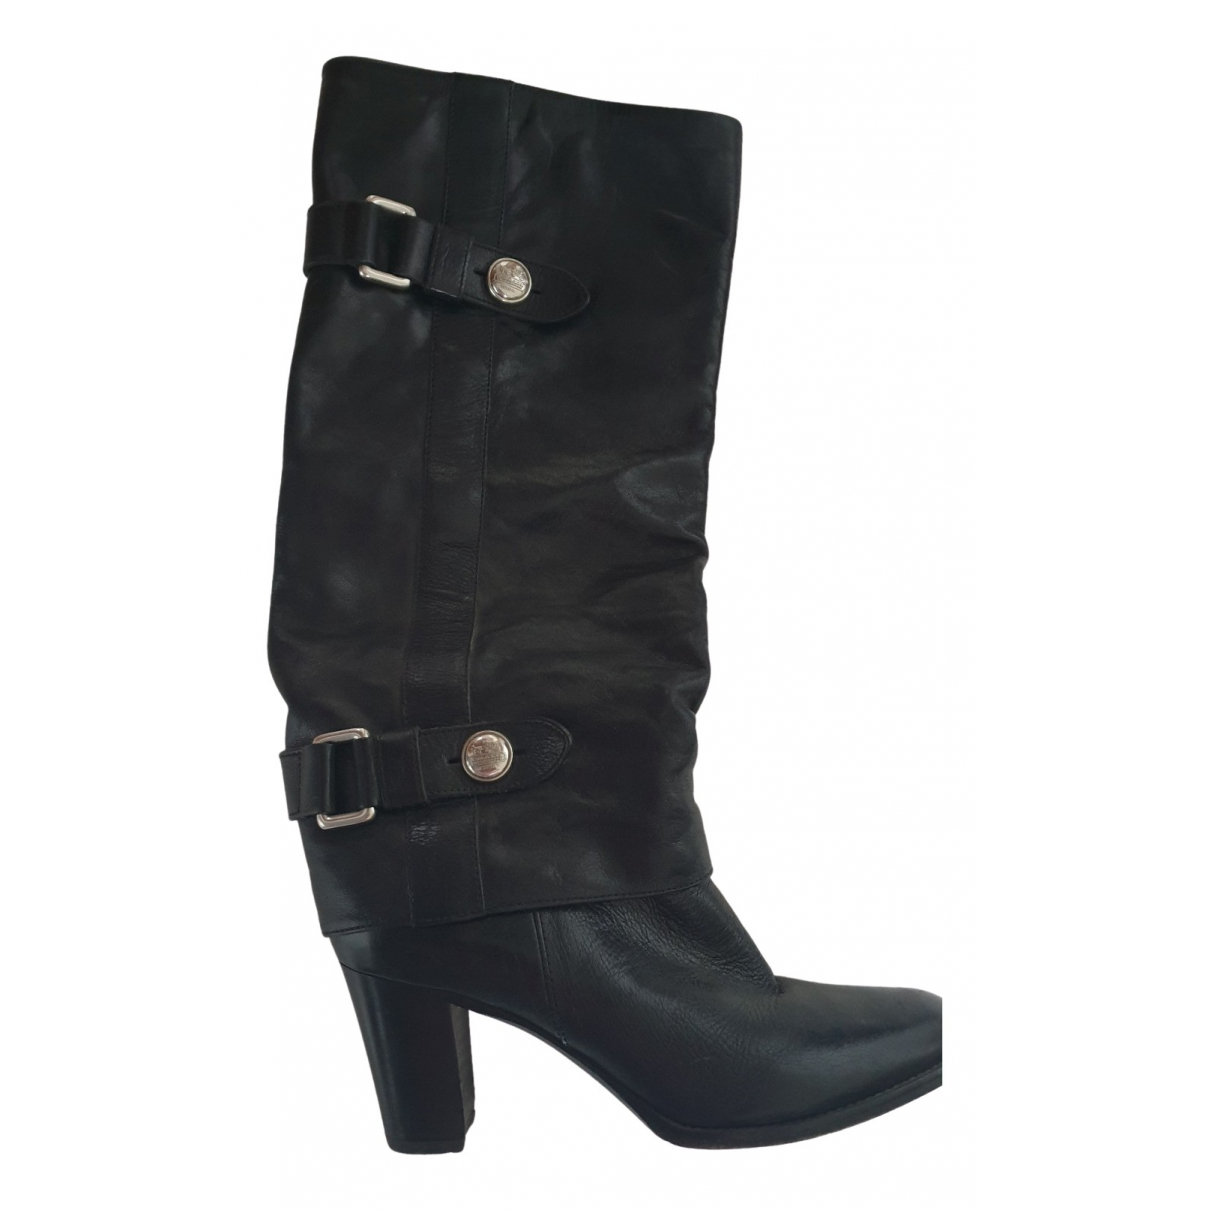 Coach N Black Leather Boots for Women 7.5 US